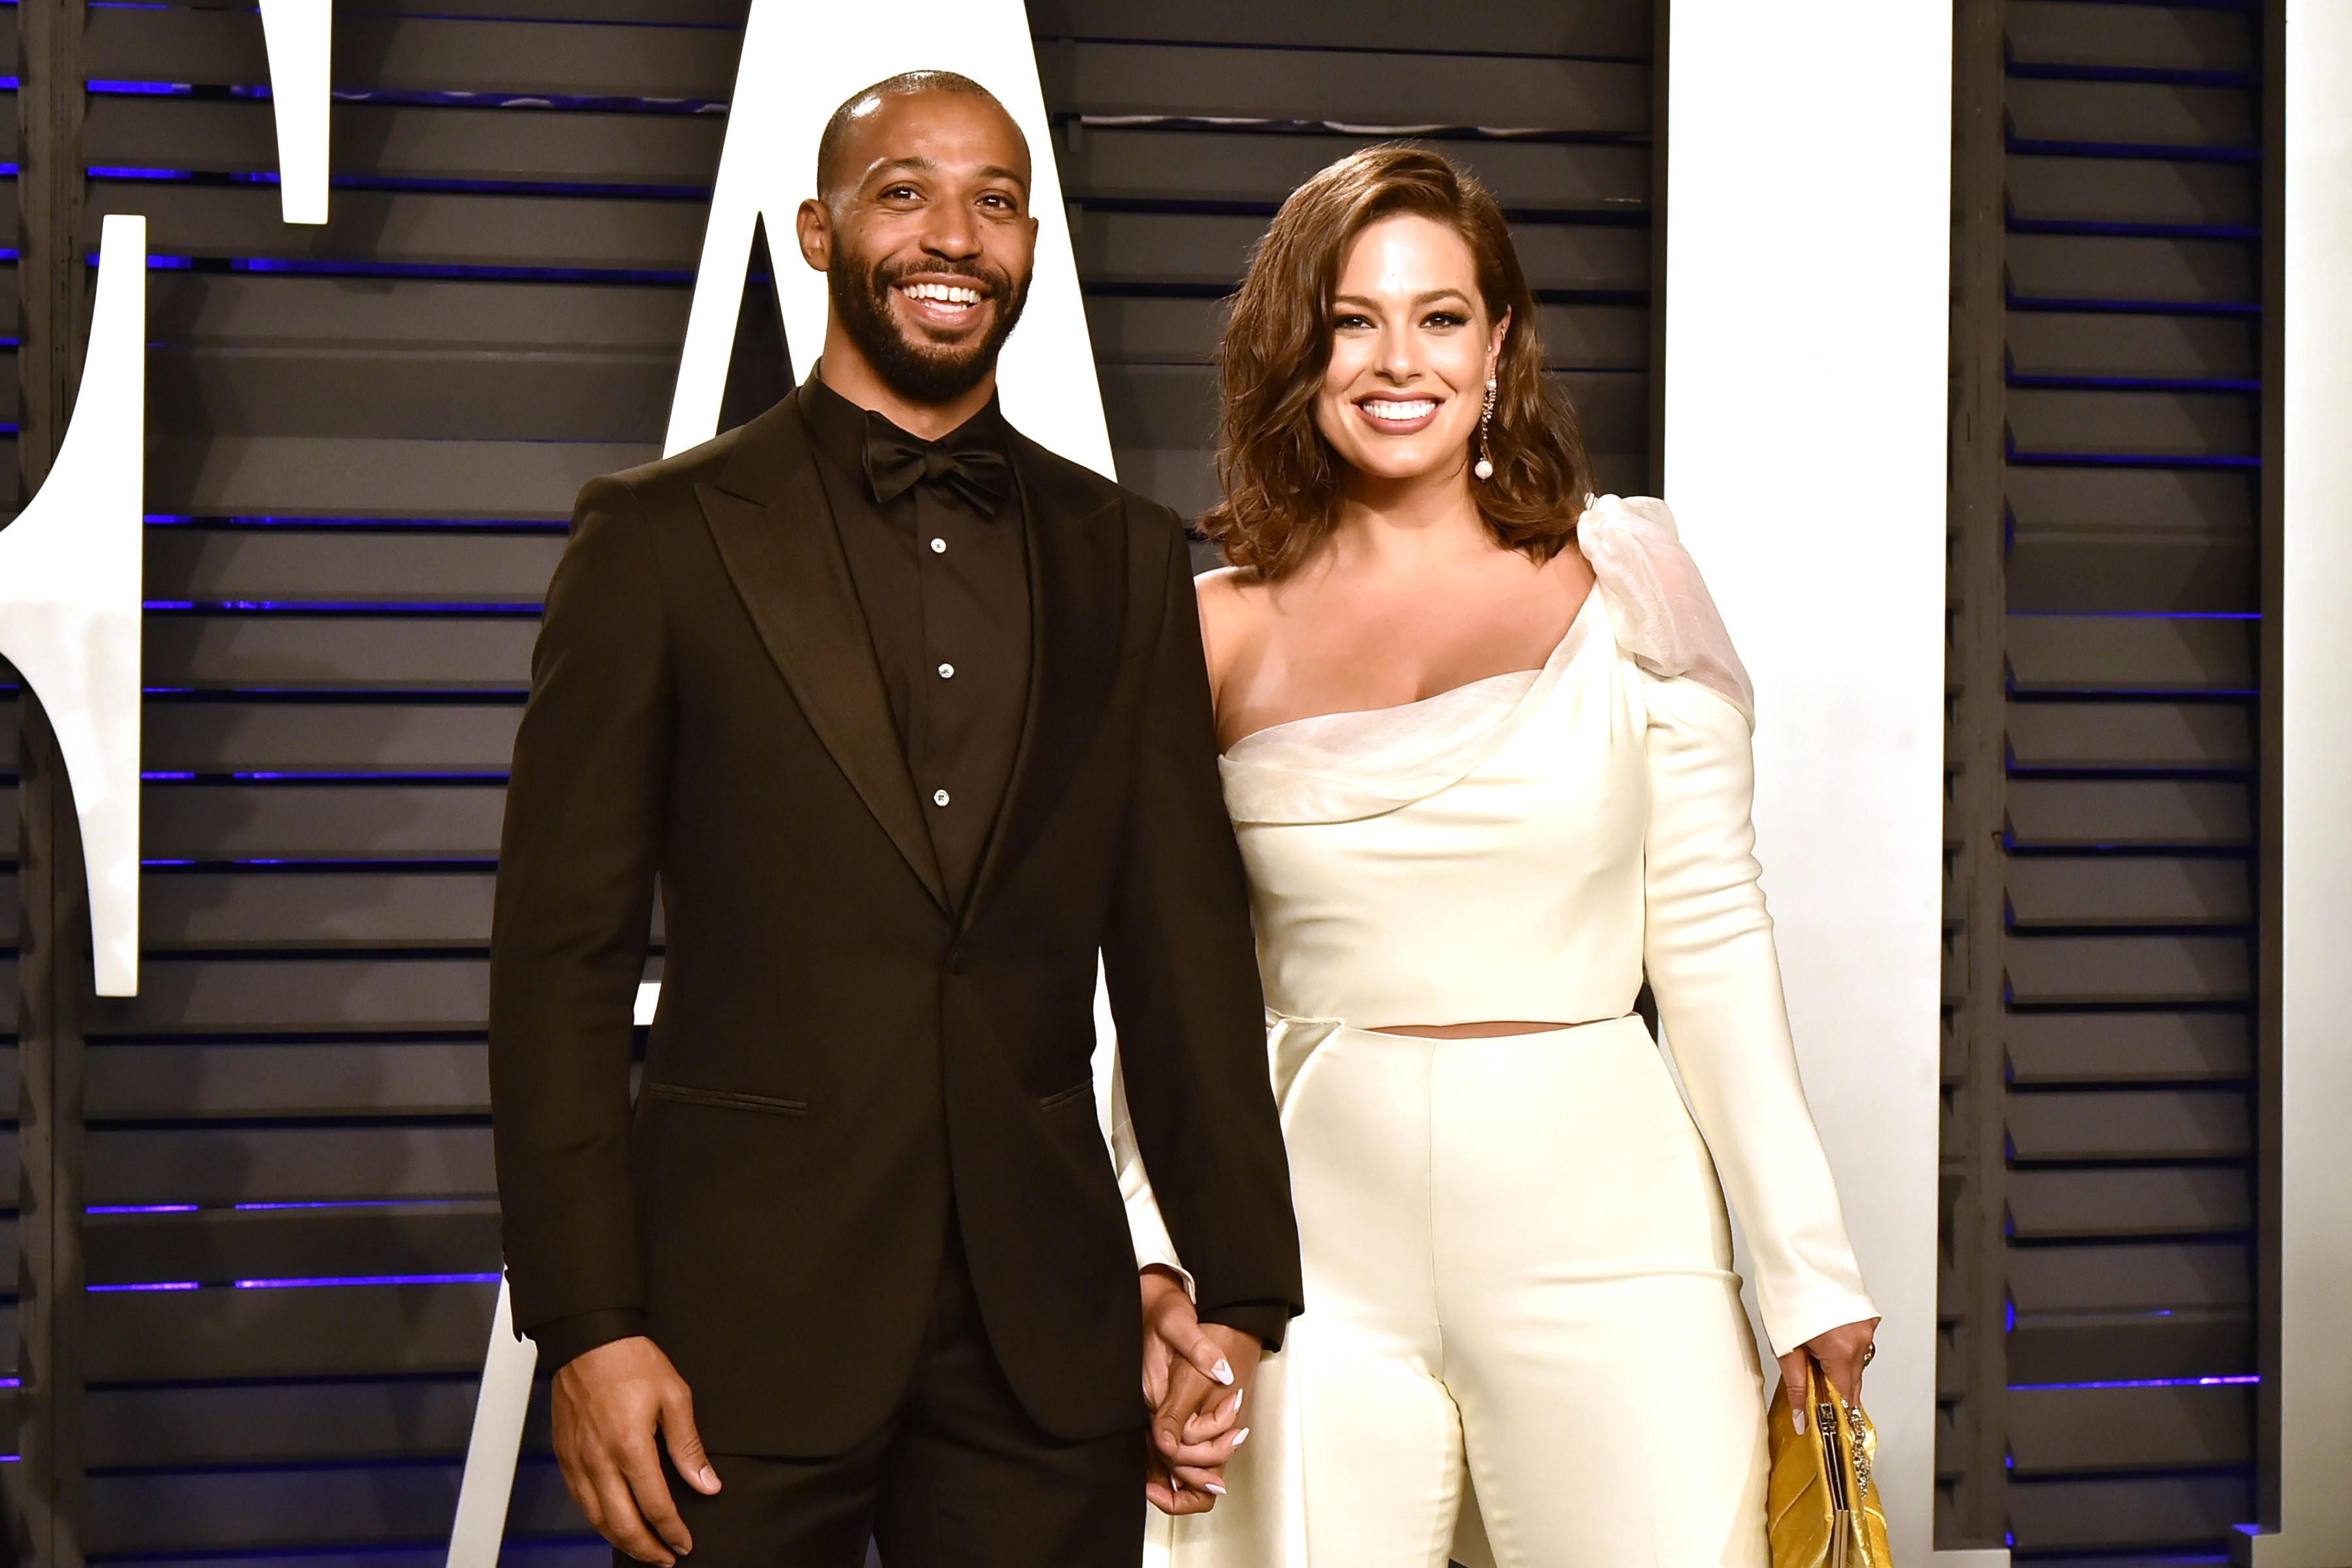 Justin Ervin and Ashley Graham attend the 2019 Vanity Fair Oscar Party on February 24, 2019.   Photo: Getty Images